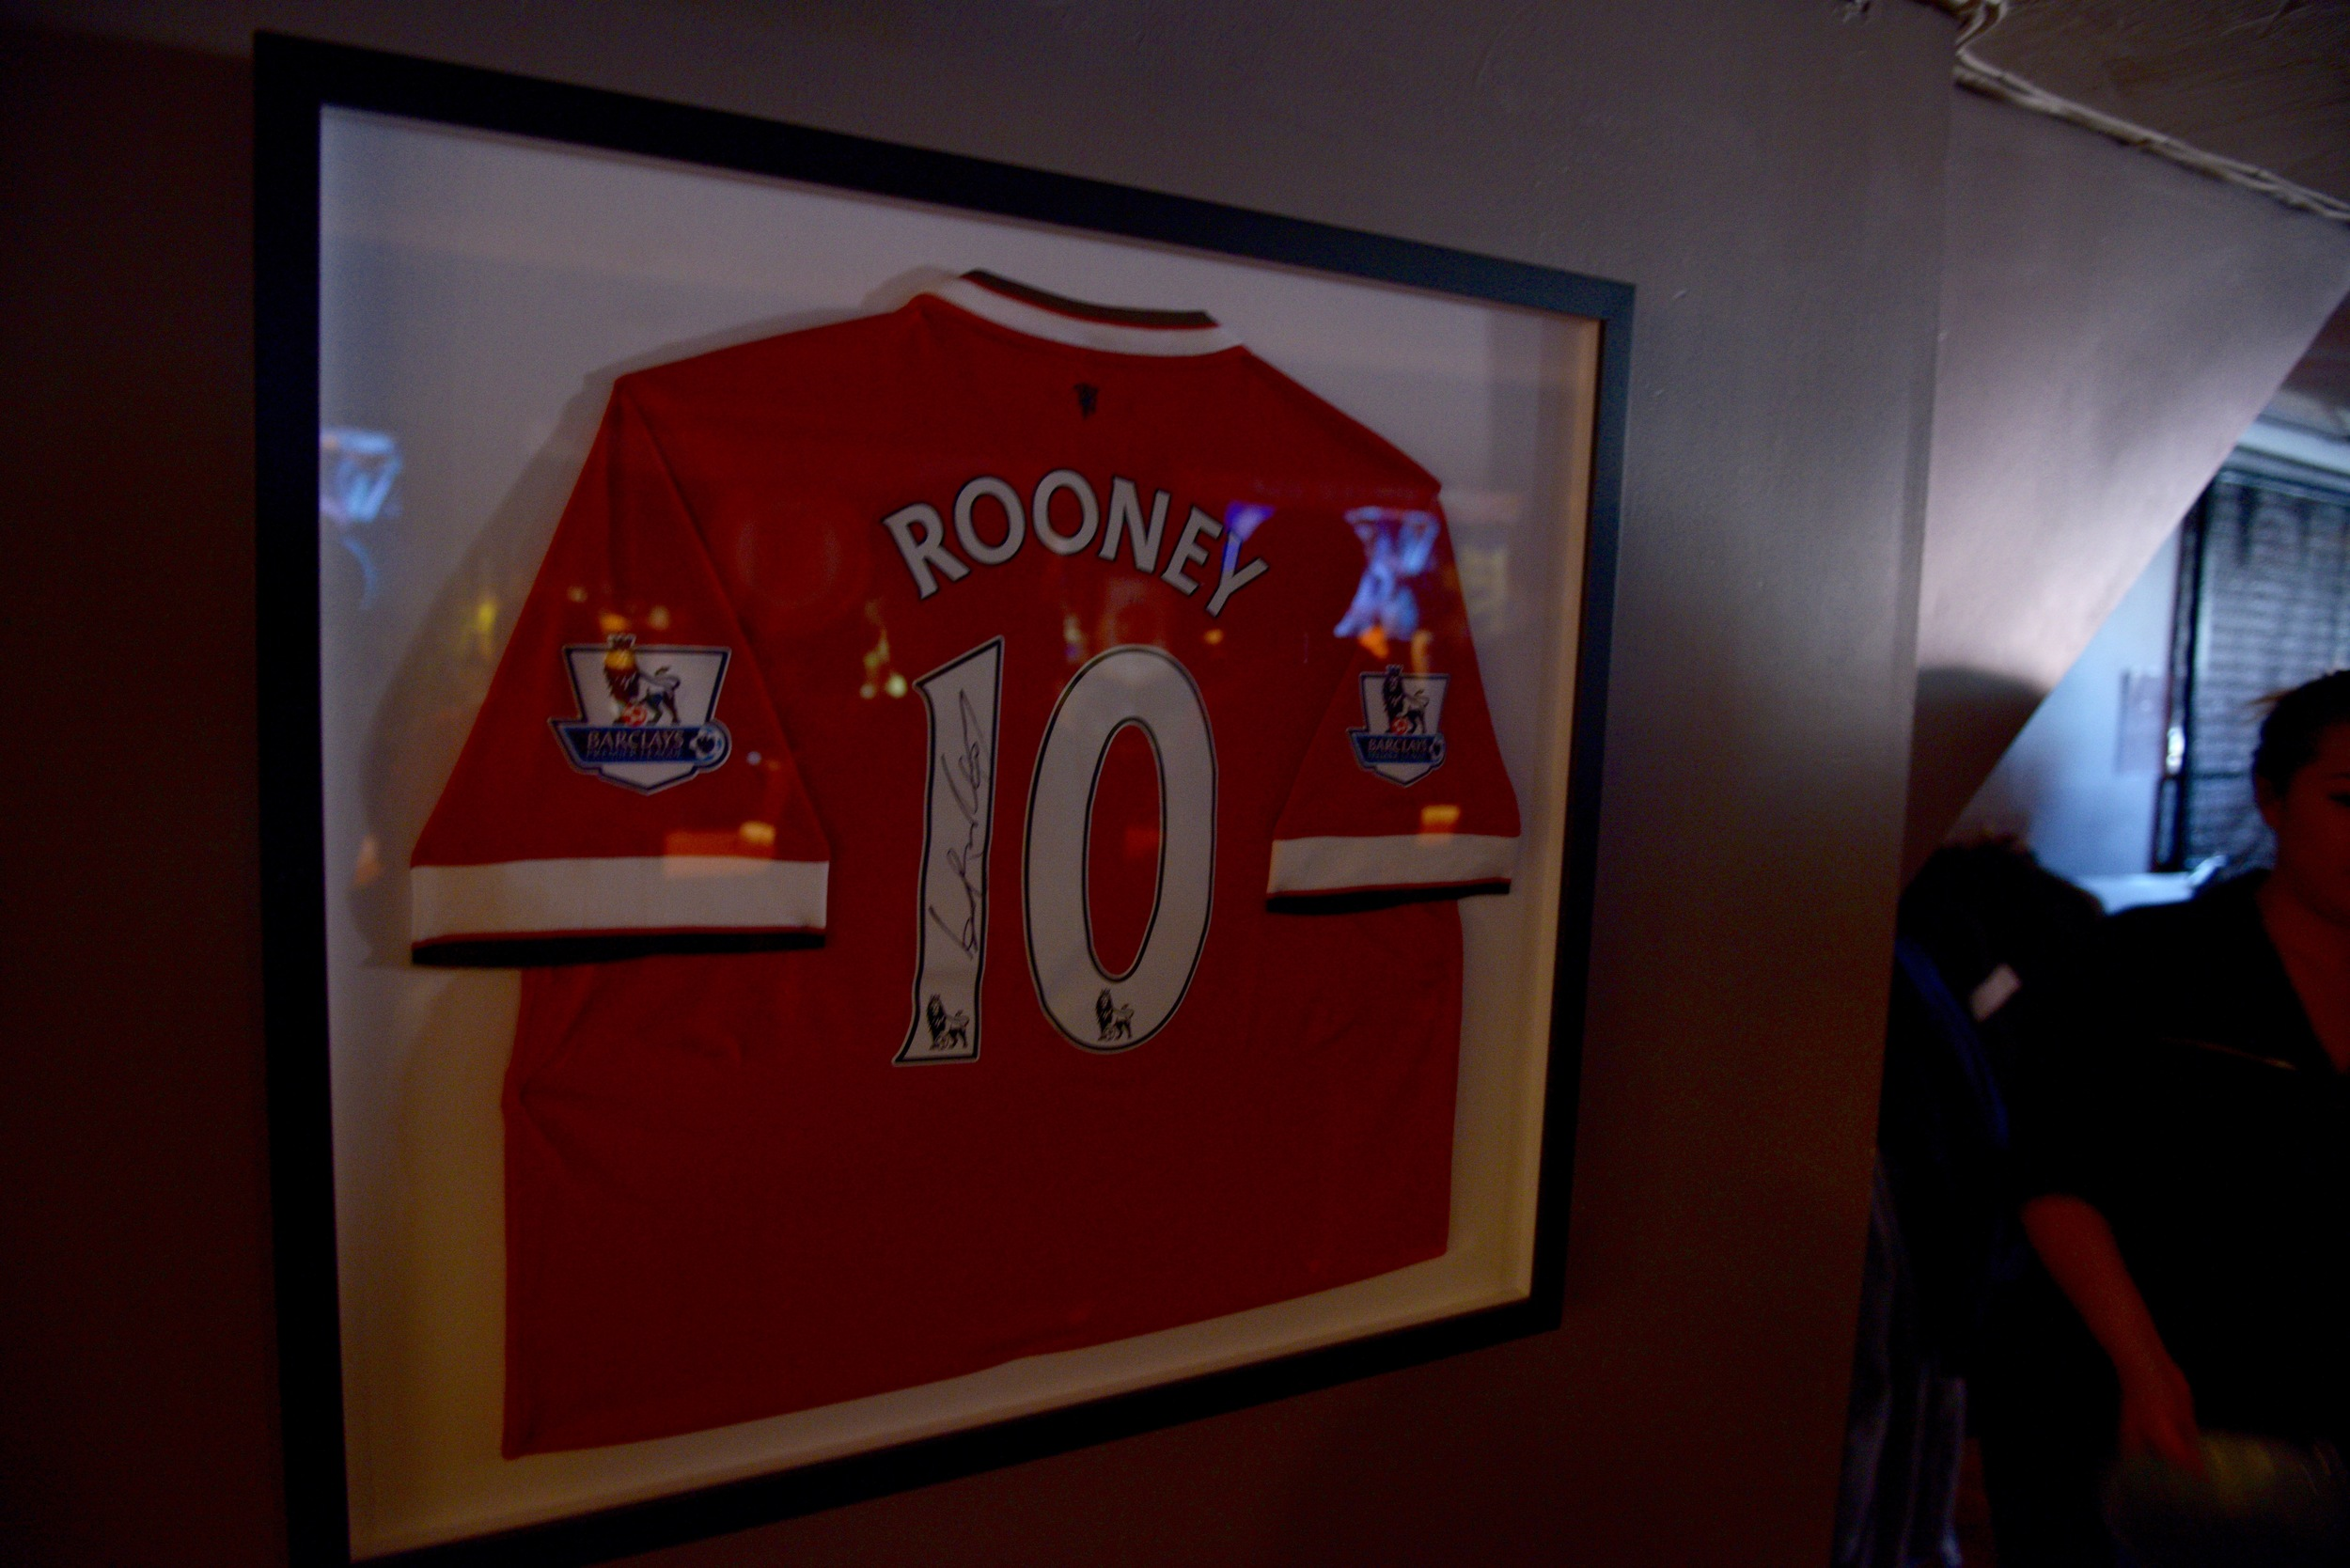 A signed Wayne Rooney jersey hangs on the wall of Crossroads Irish Pub. Rooney has played for the club for 12 years, scored over 260 goals, and won 12 trophies with the club